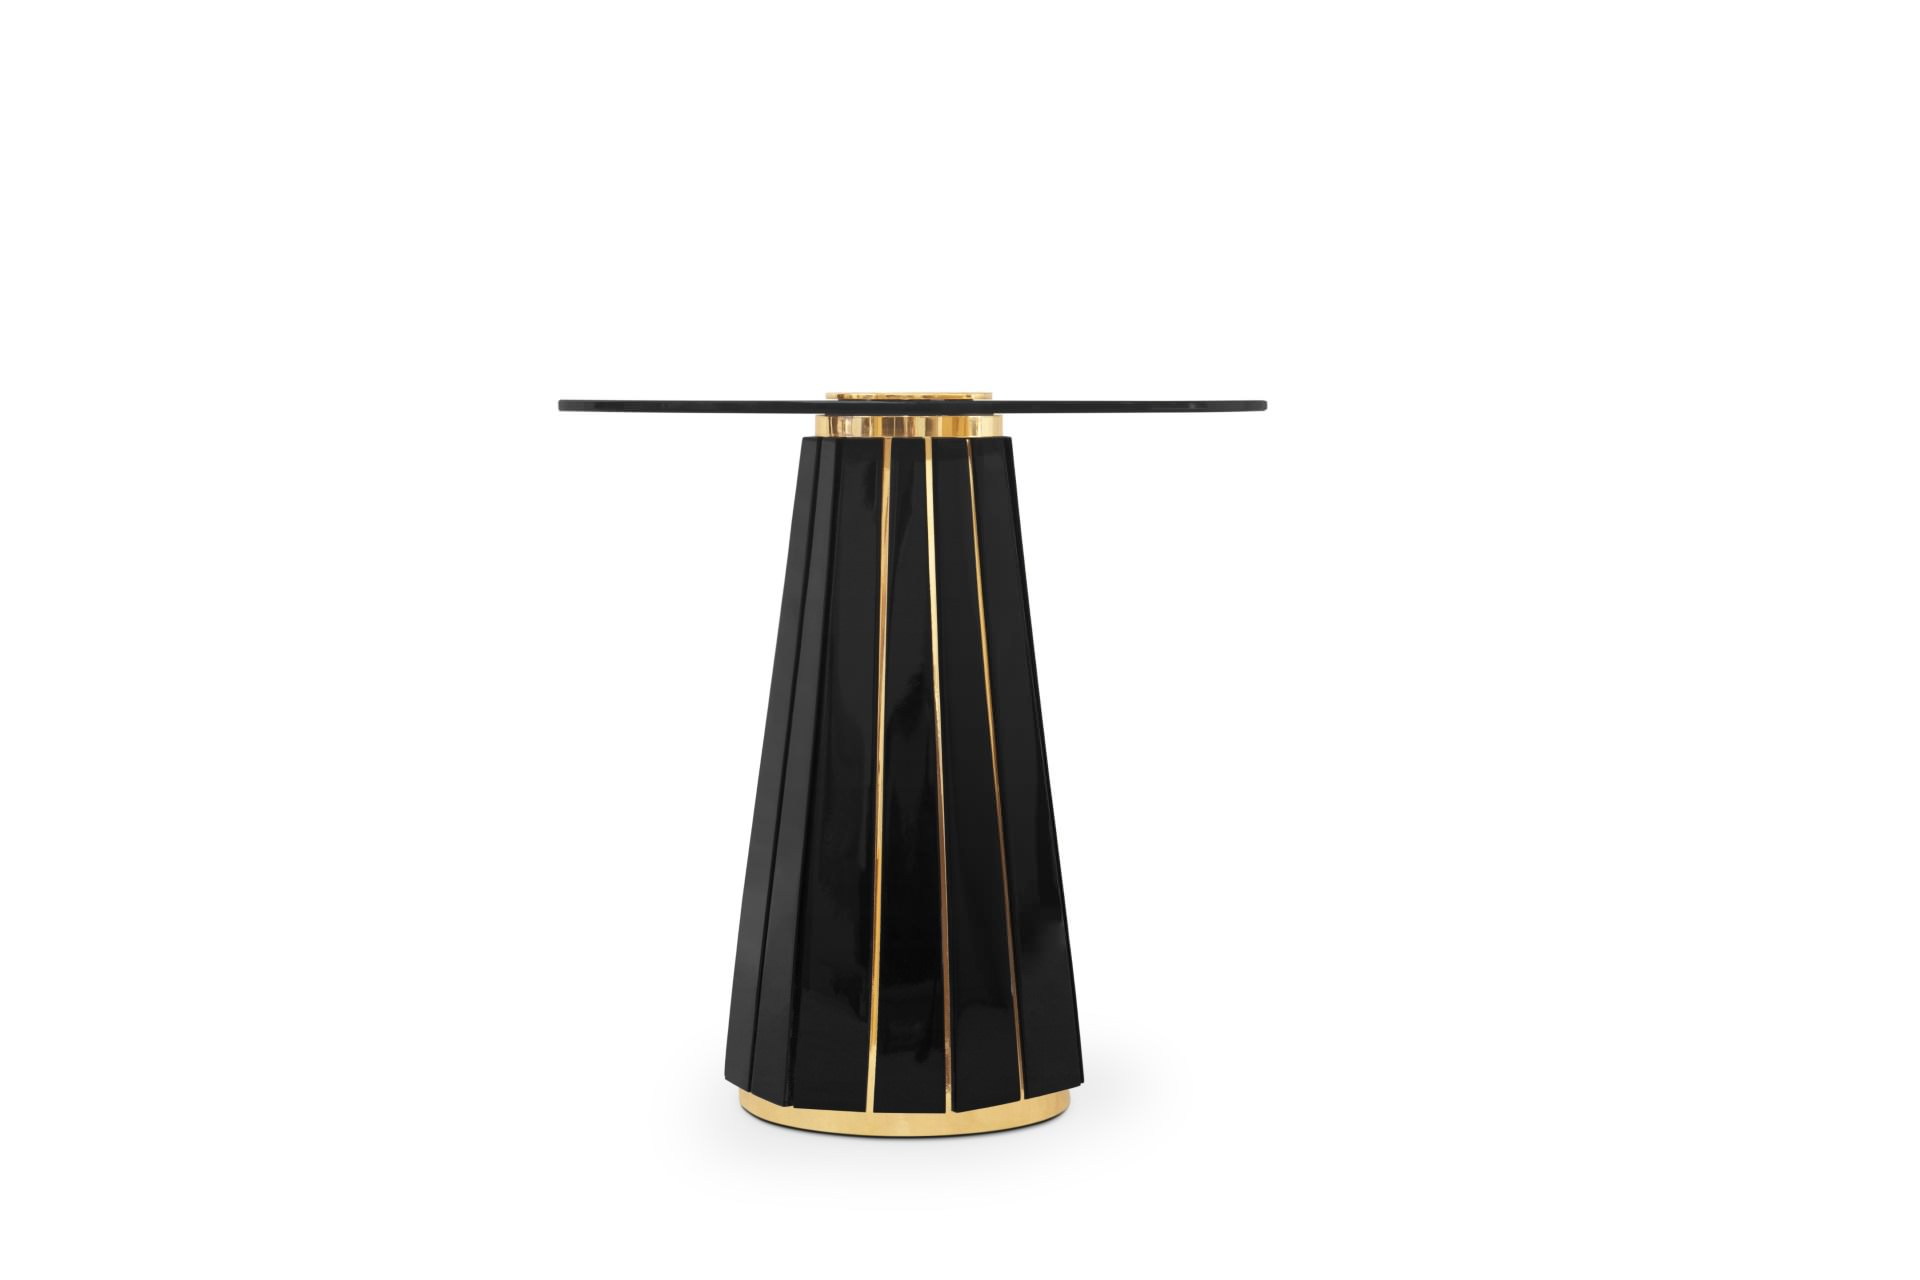 A ravishing handcraft side table, that is made of round smoked glass placed on top of a wooden structure in black lacquer touched by gold-plated brass bars. This luxury item (...)